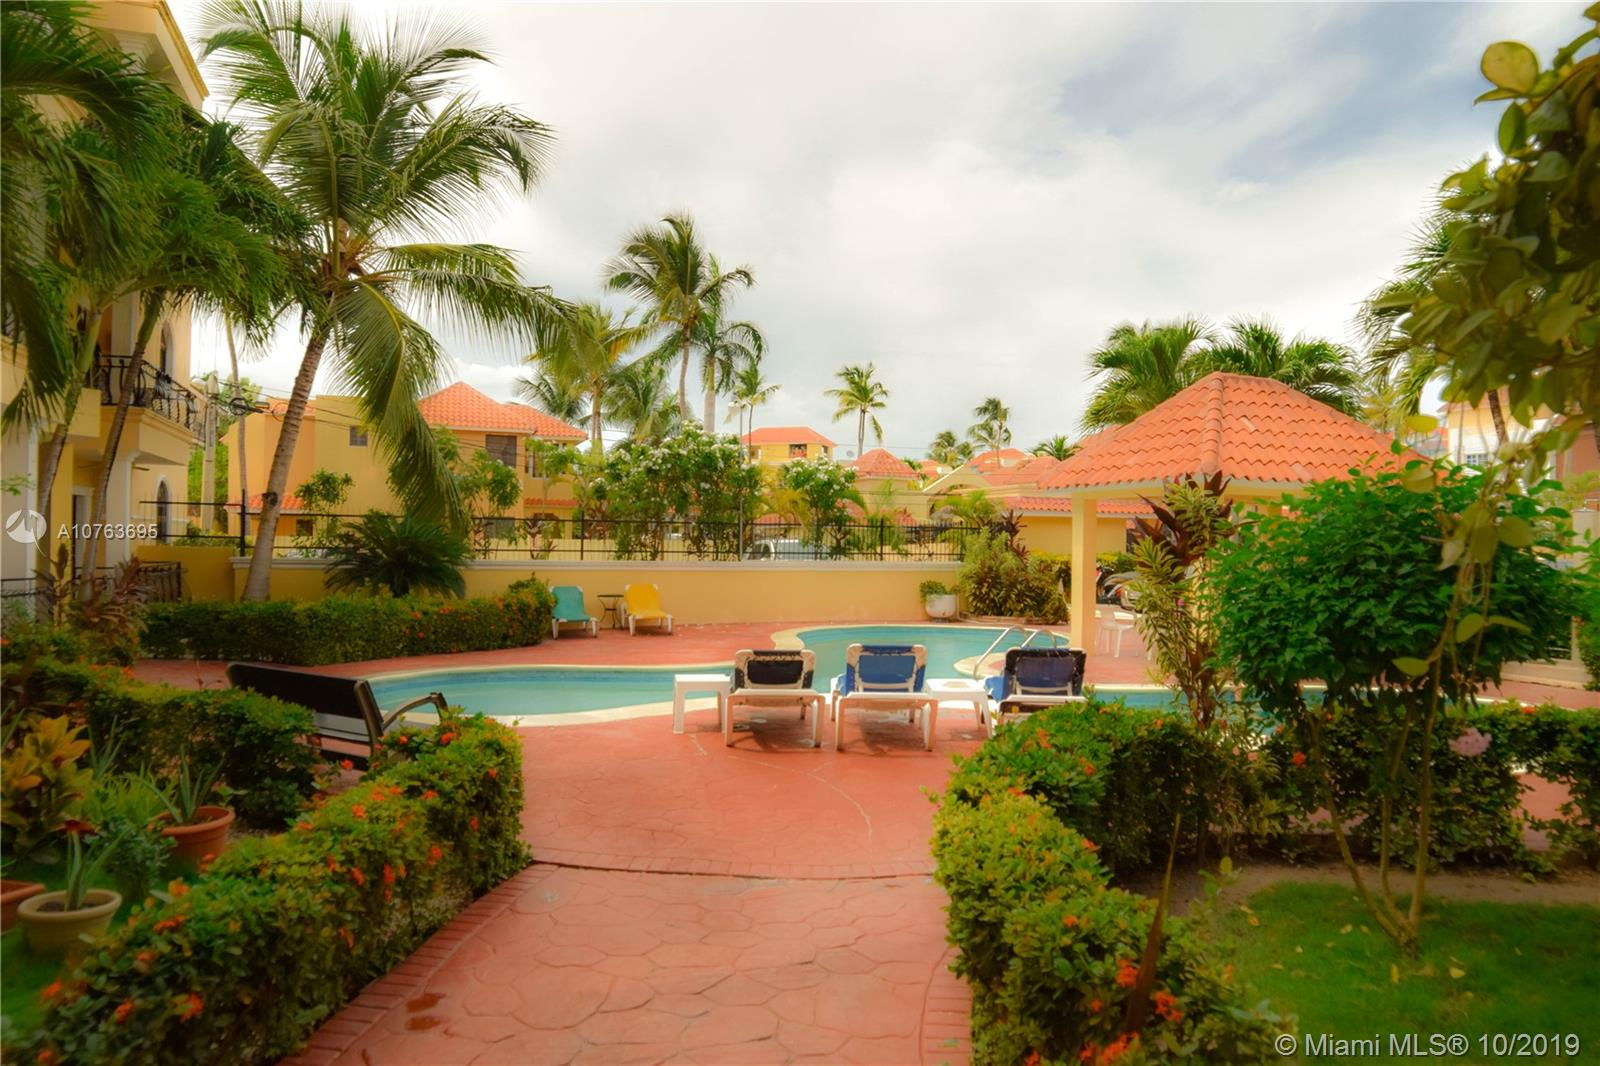 1 Santa Maria Del Mar B2, Other City - Not In The State Of Florida, CO 23000